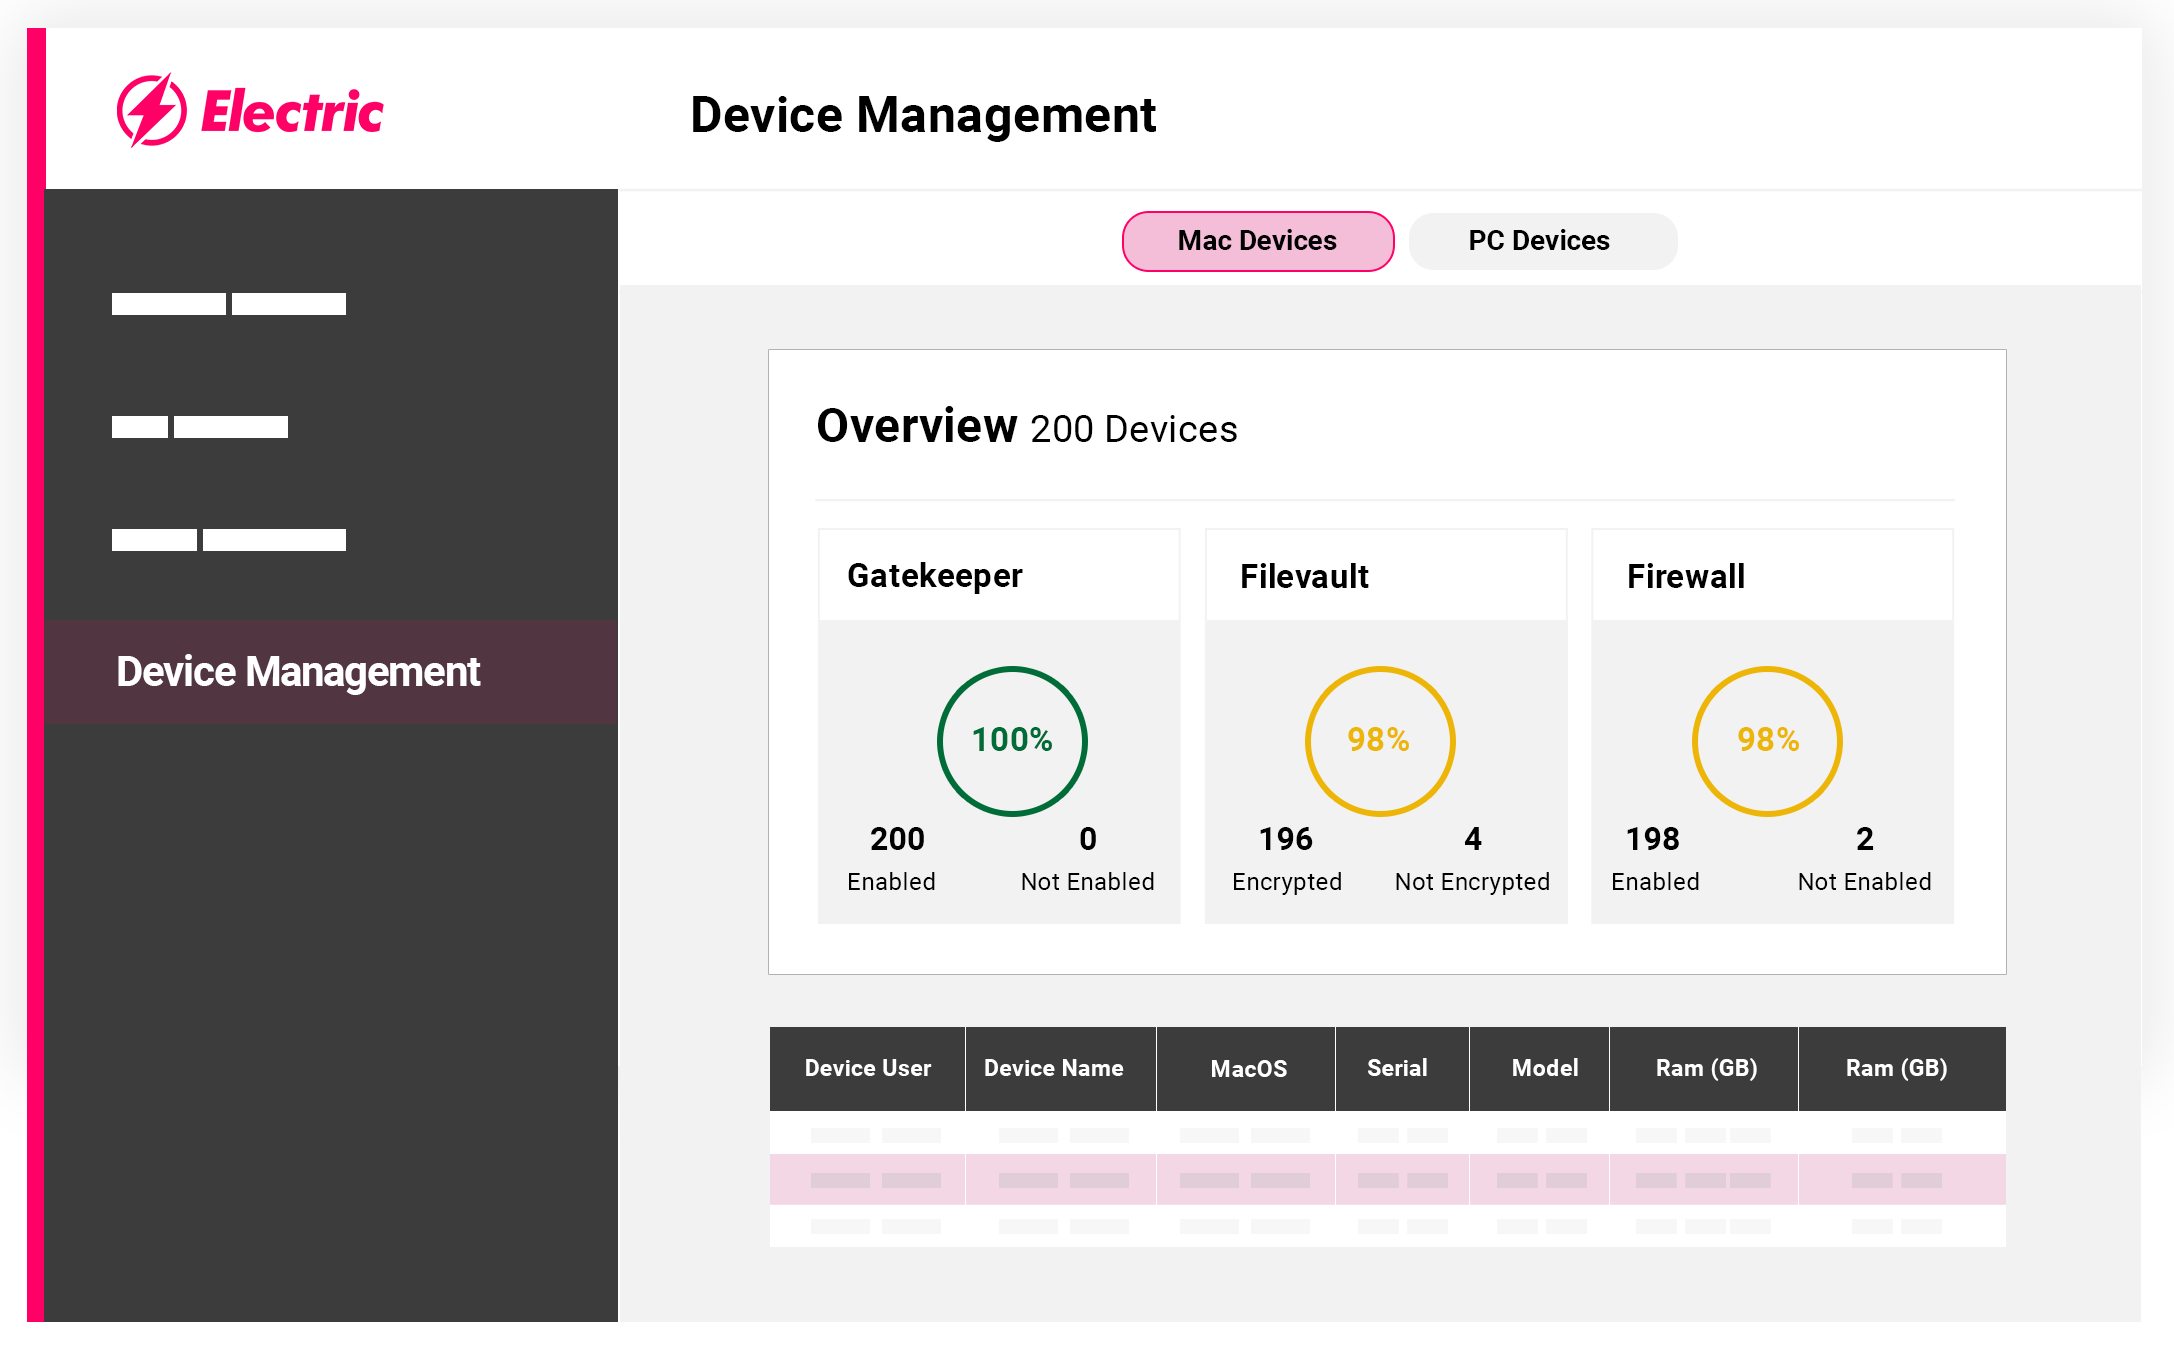 Electric device management